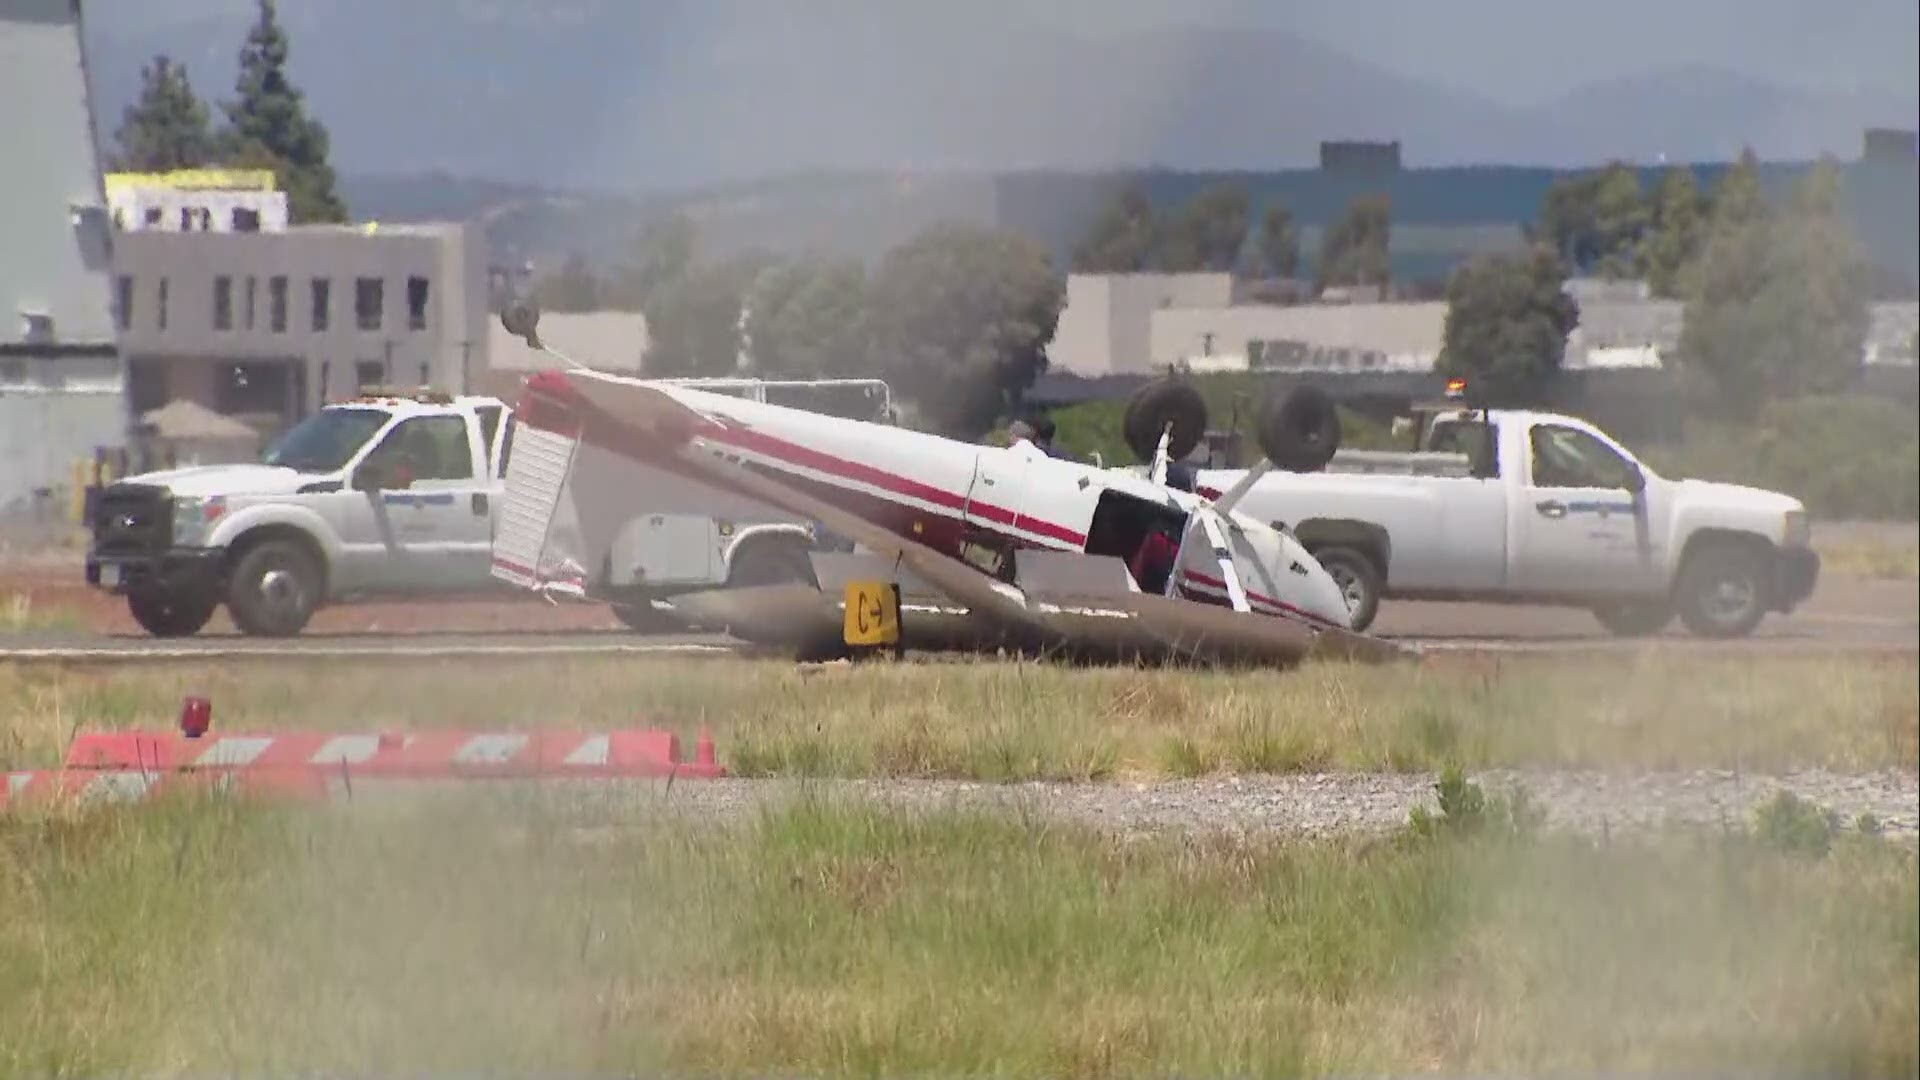 Plane Crashes At Montgomery Field No Injuries Reported Cbs8 Com